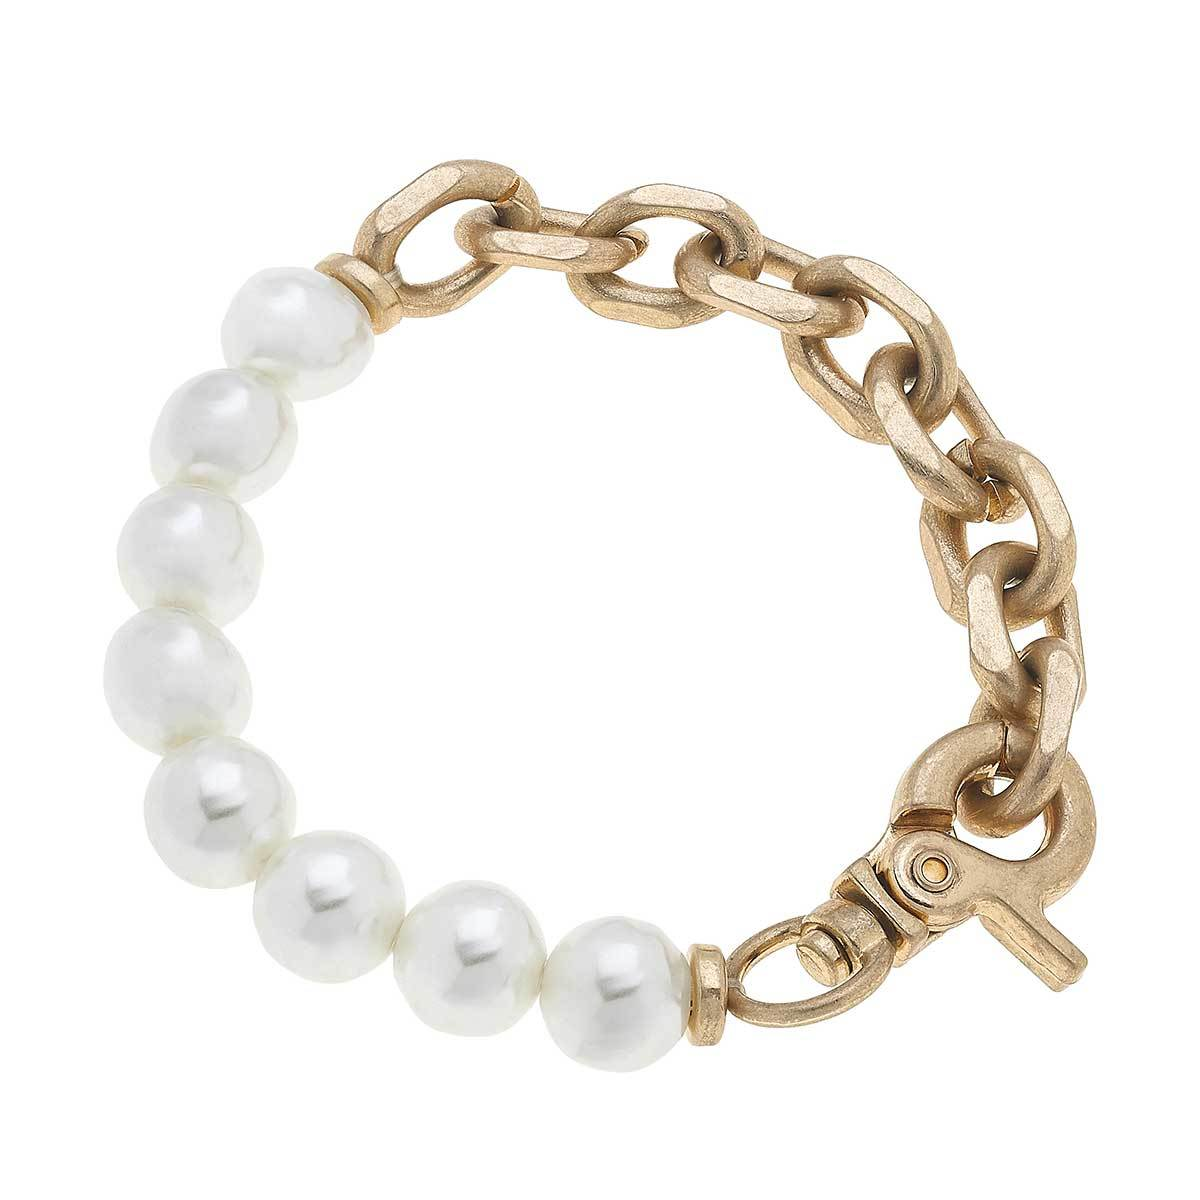 Suri Freshwater Pearl & Chunky Chain Link Bracelet Worn Gold 7.5""